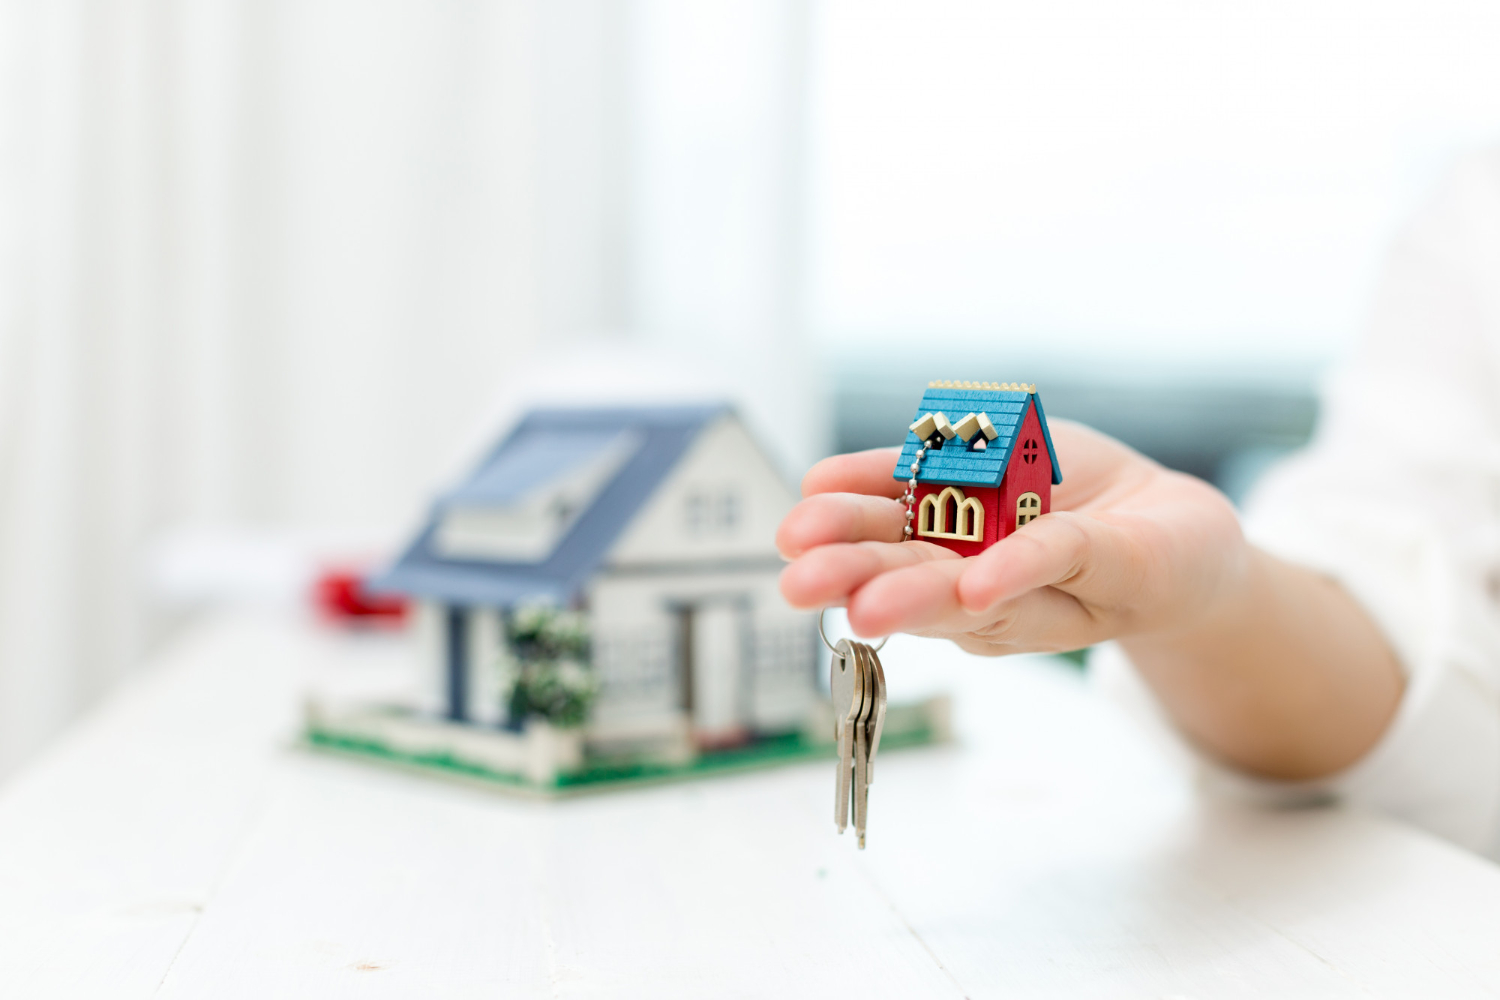 keyring of a house being held